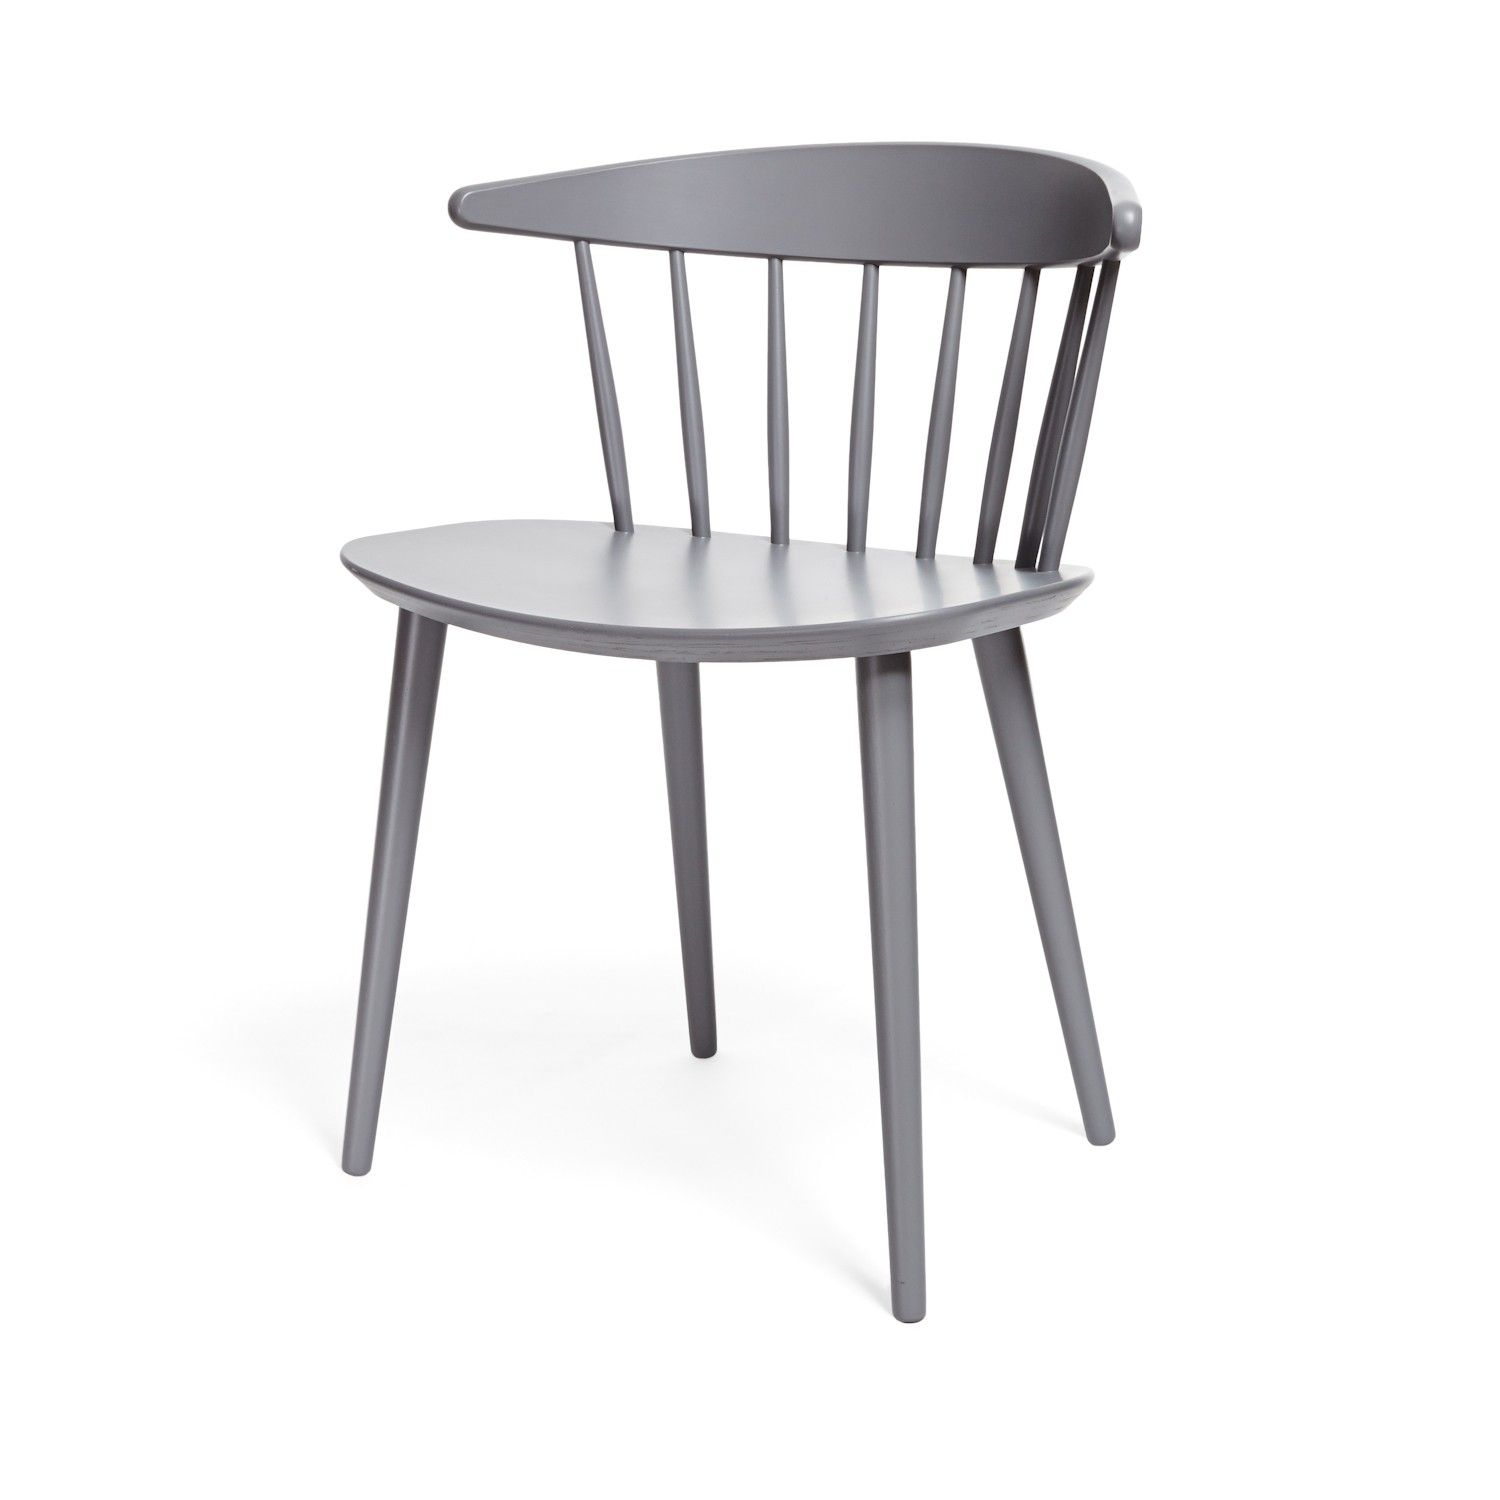 The Slat Back Chair Is Reimagined In A High Gloss Finish. Its Low Back